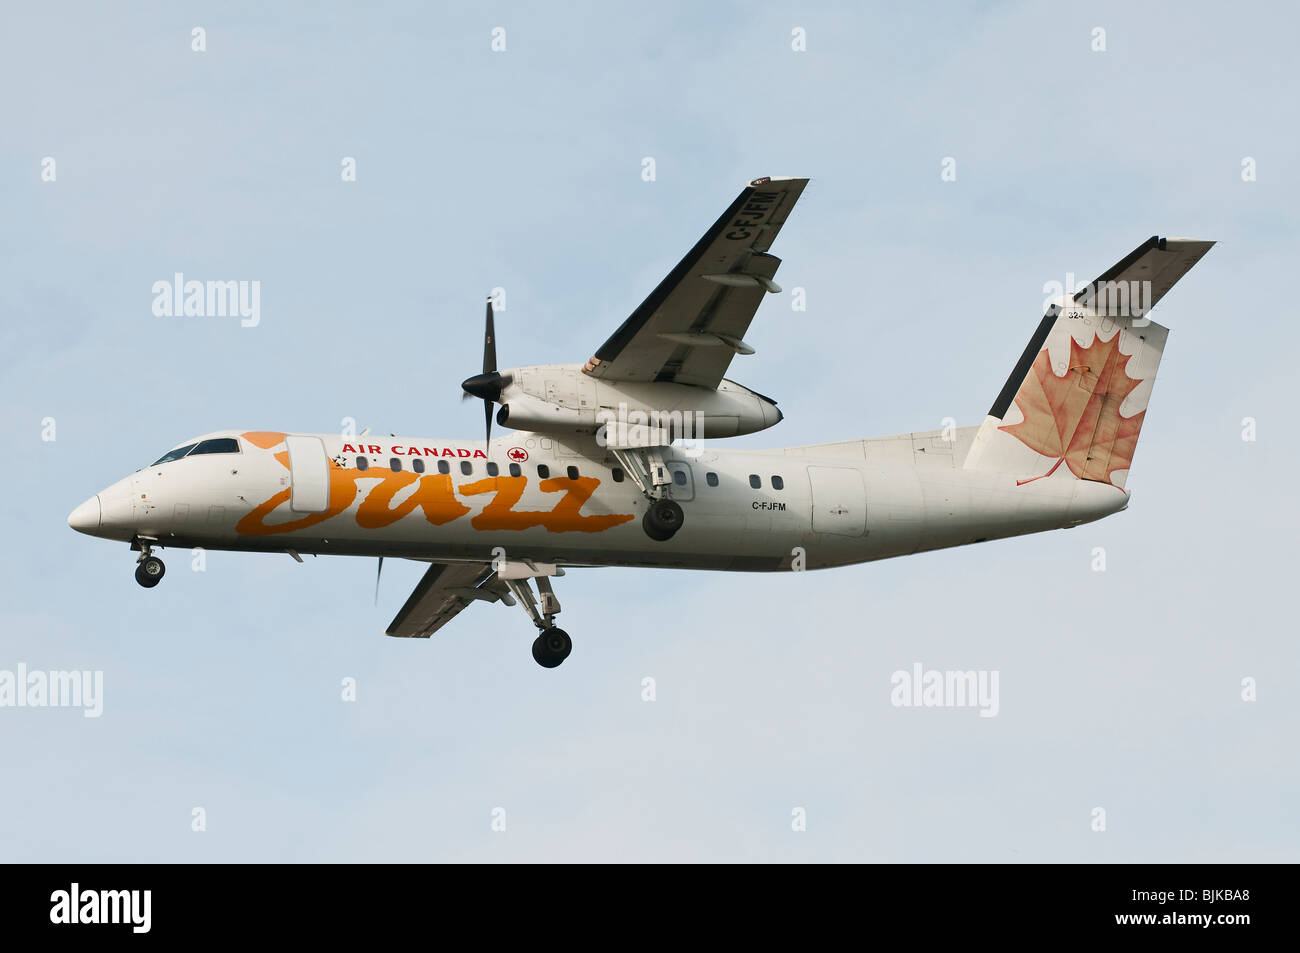 Air Canada Jazz Dash-8 turboprop airplane on final approach for landing - Stock Image